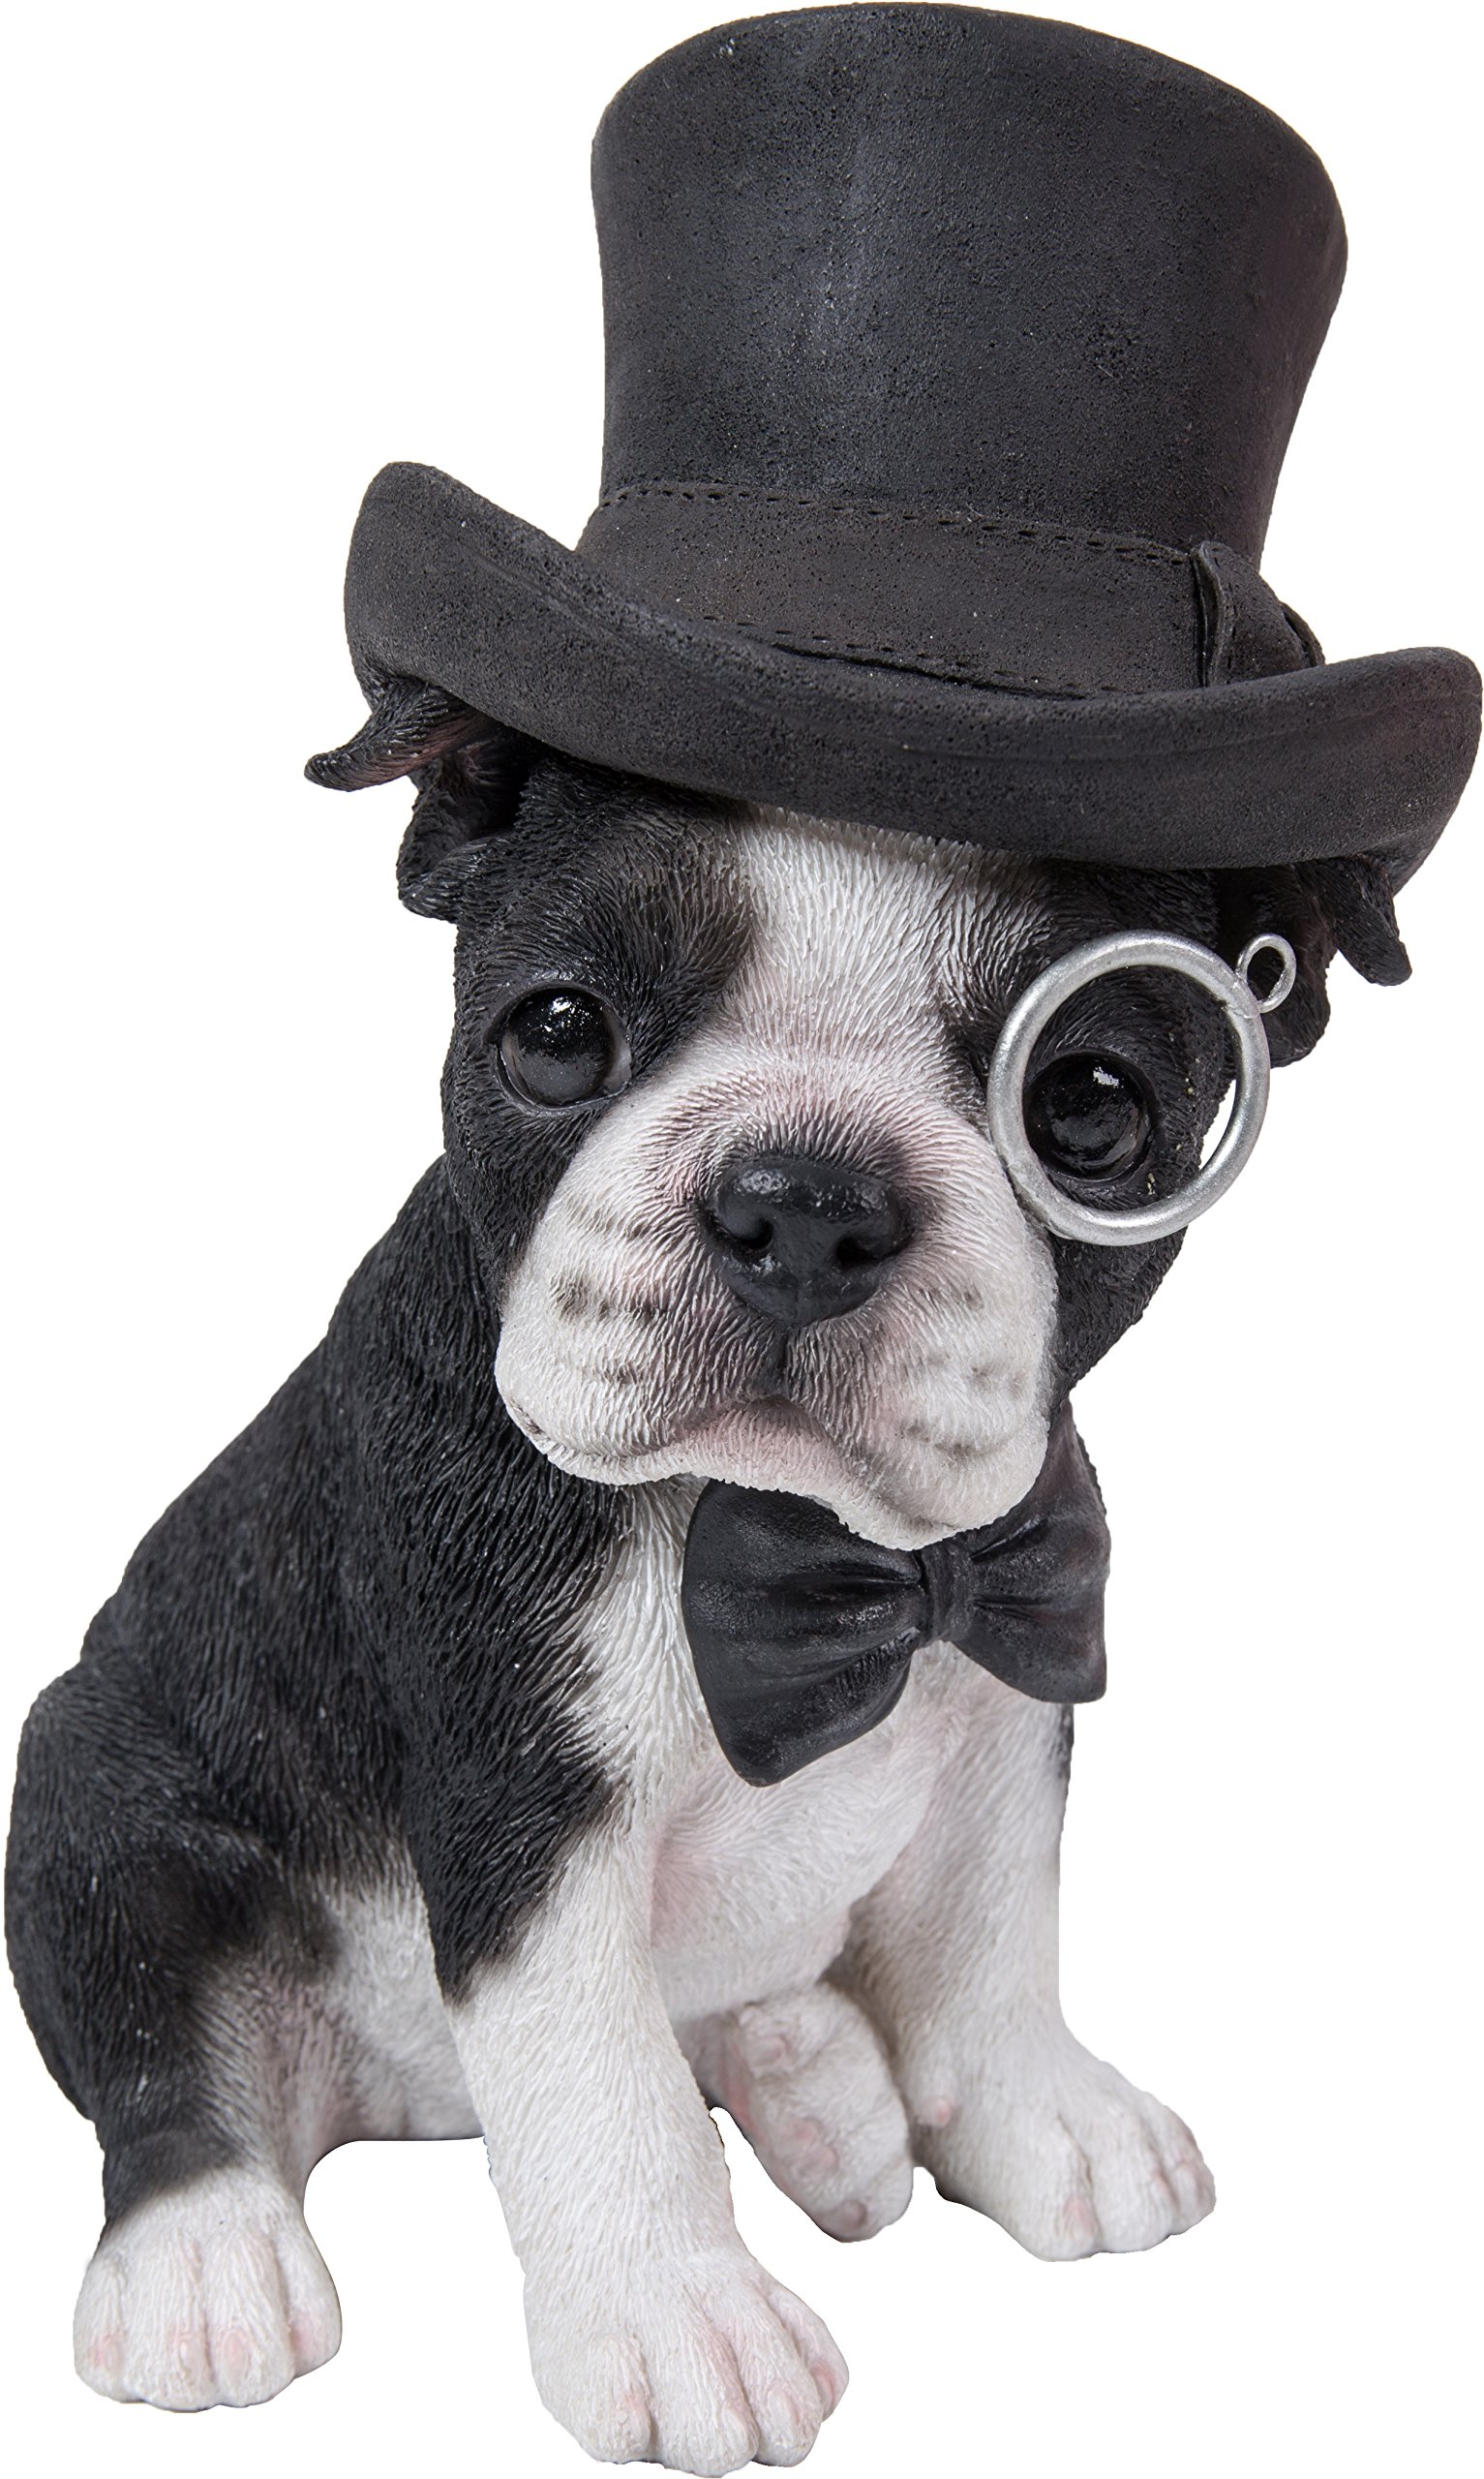 Boston Terrier with Top Hat - Spectacle and Bow Tie